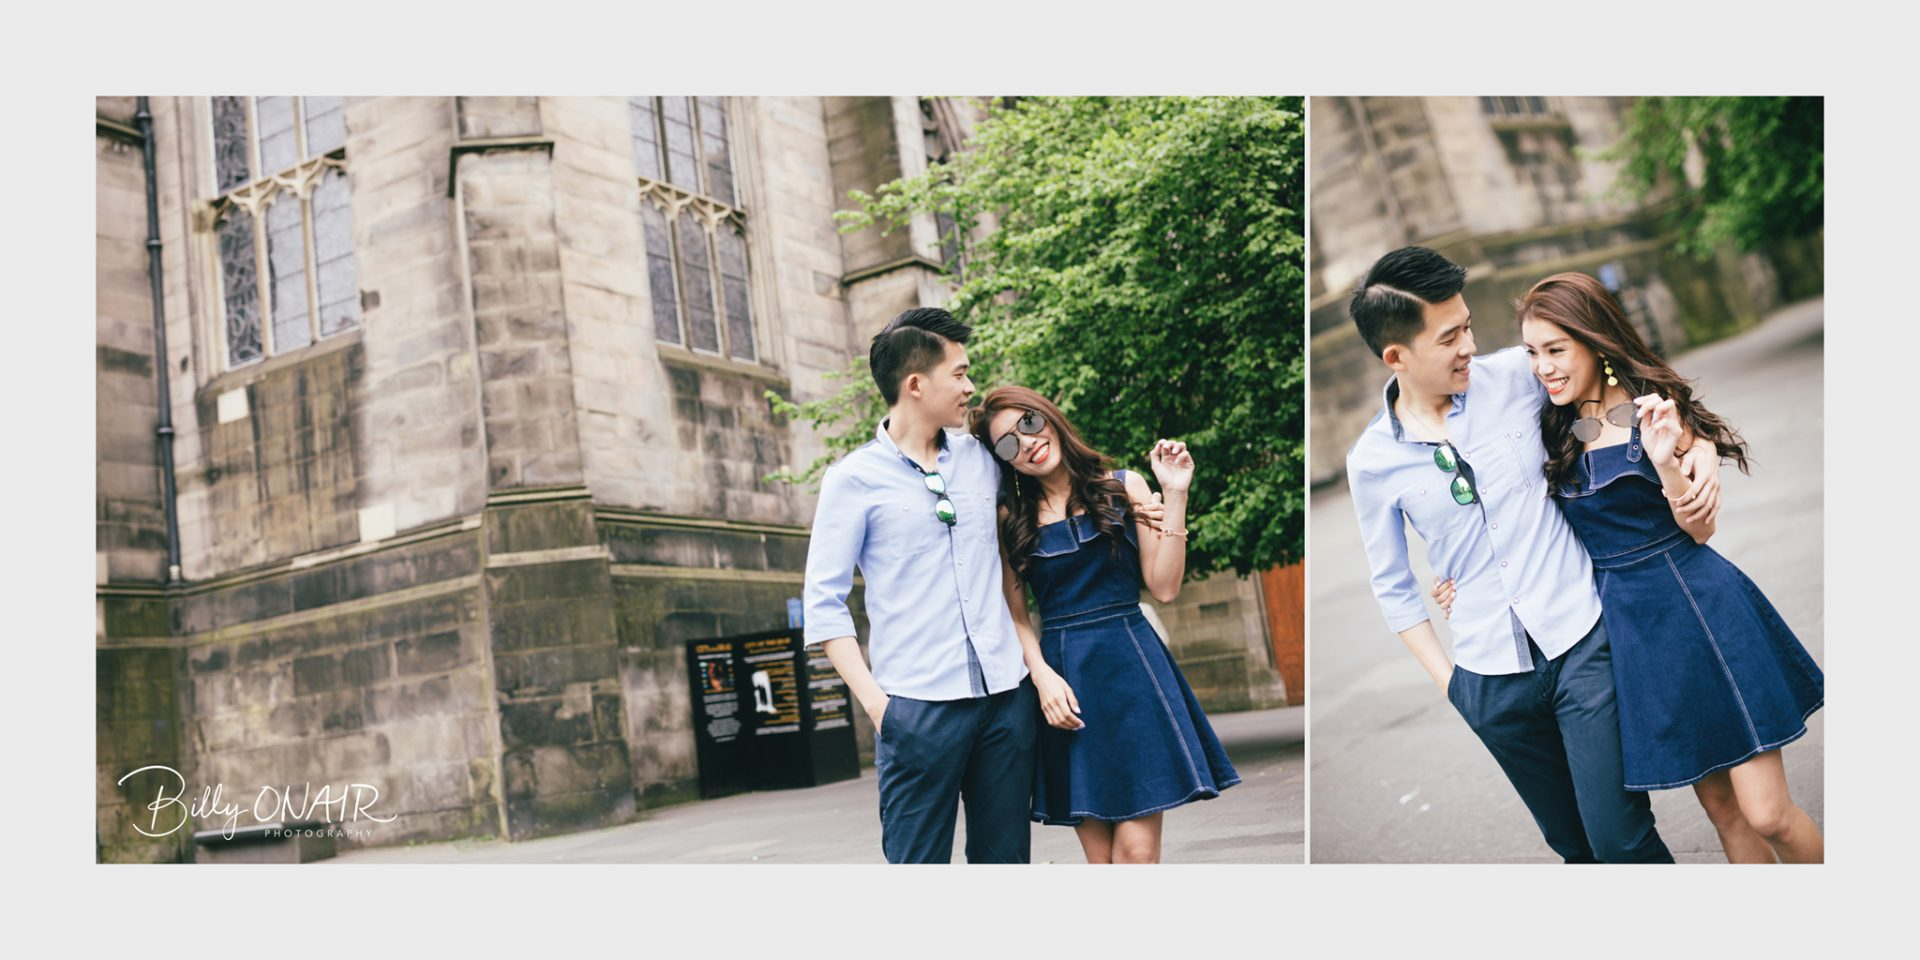 edinburgh_prewedding_04